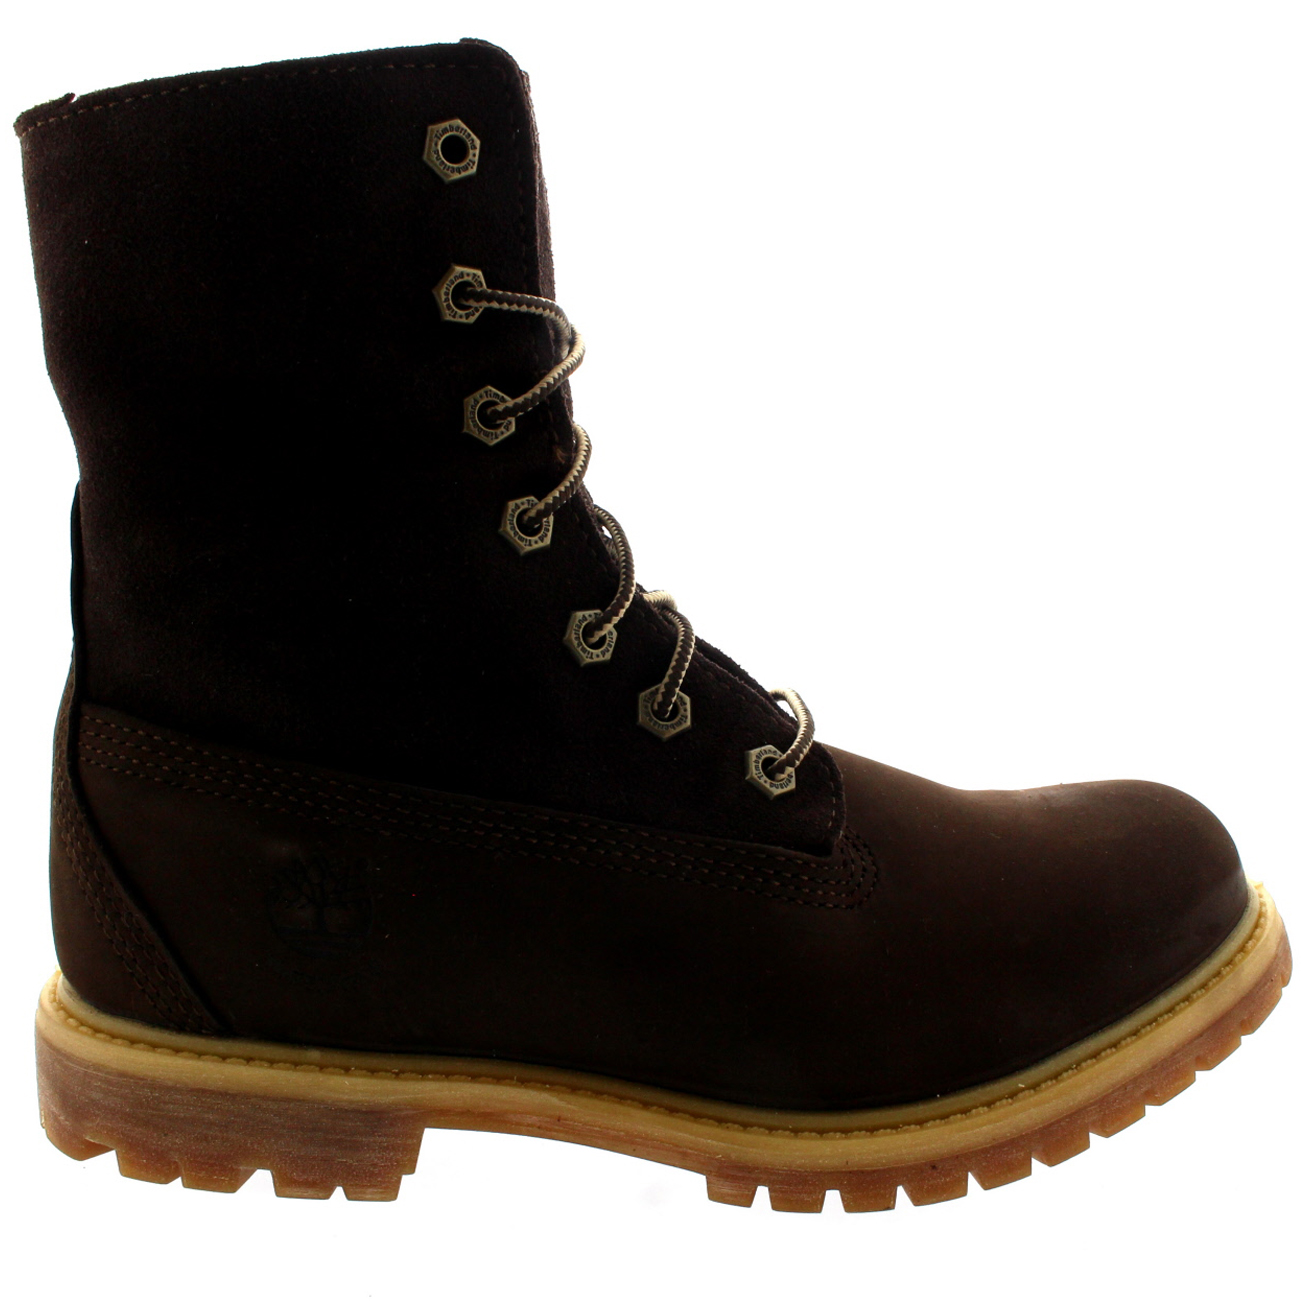 5f37d5eeb6a Womens Timberland Authentic Teddy Fleece Earth Keepers Fold Down Boots UK  3-9